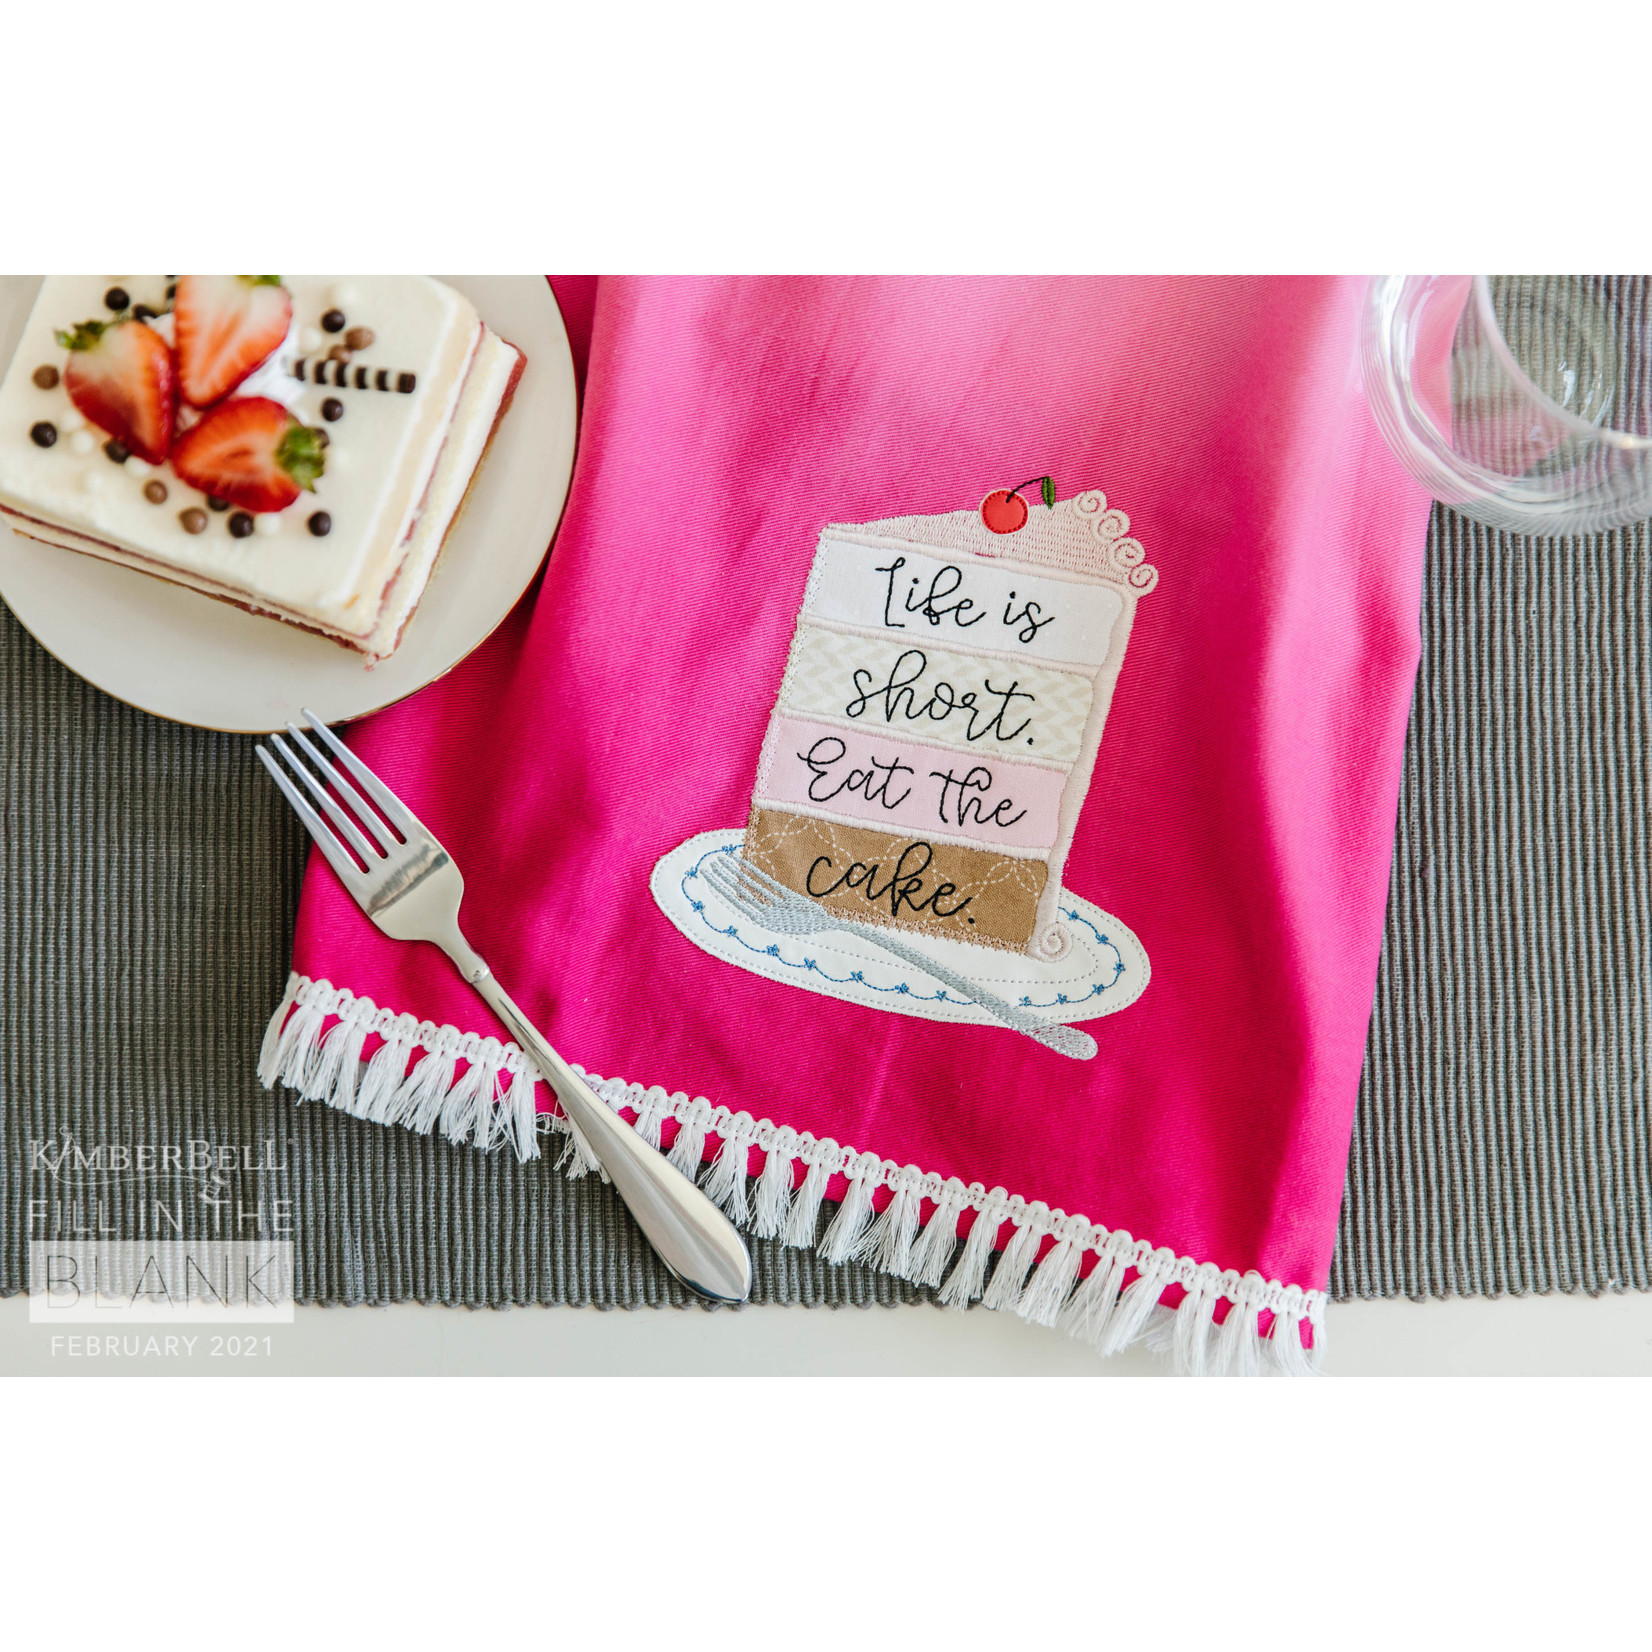 Kimberbell Designs Fill in the Blank - Life Is Short Tea Towel Deluxe Kit